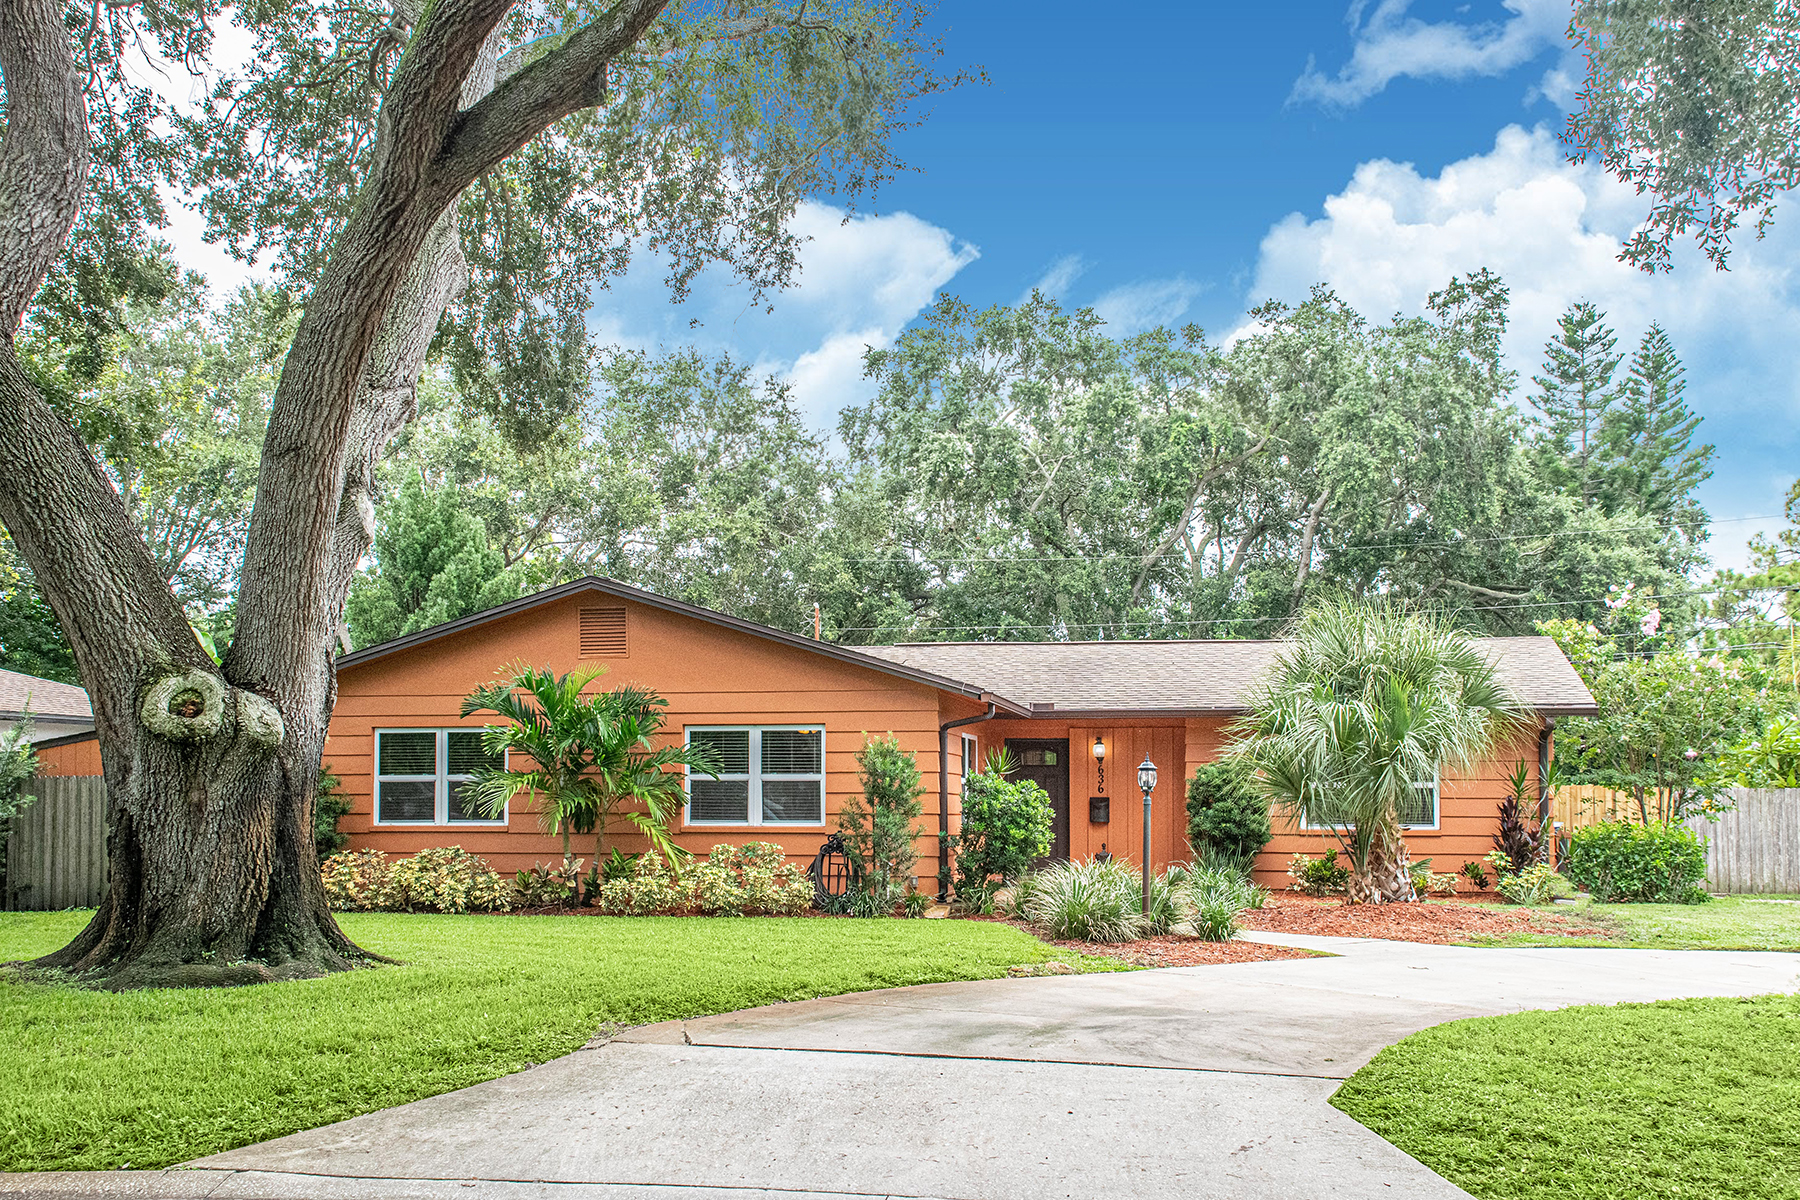 Single Family Homes for Active at 636 Atwood Ave N, St. Pete, Fl 33702 636 Atwood Ave N St. Petersburg, Florida 33702 United States